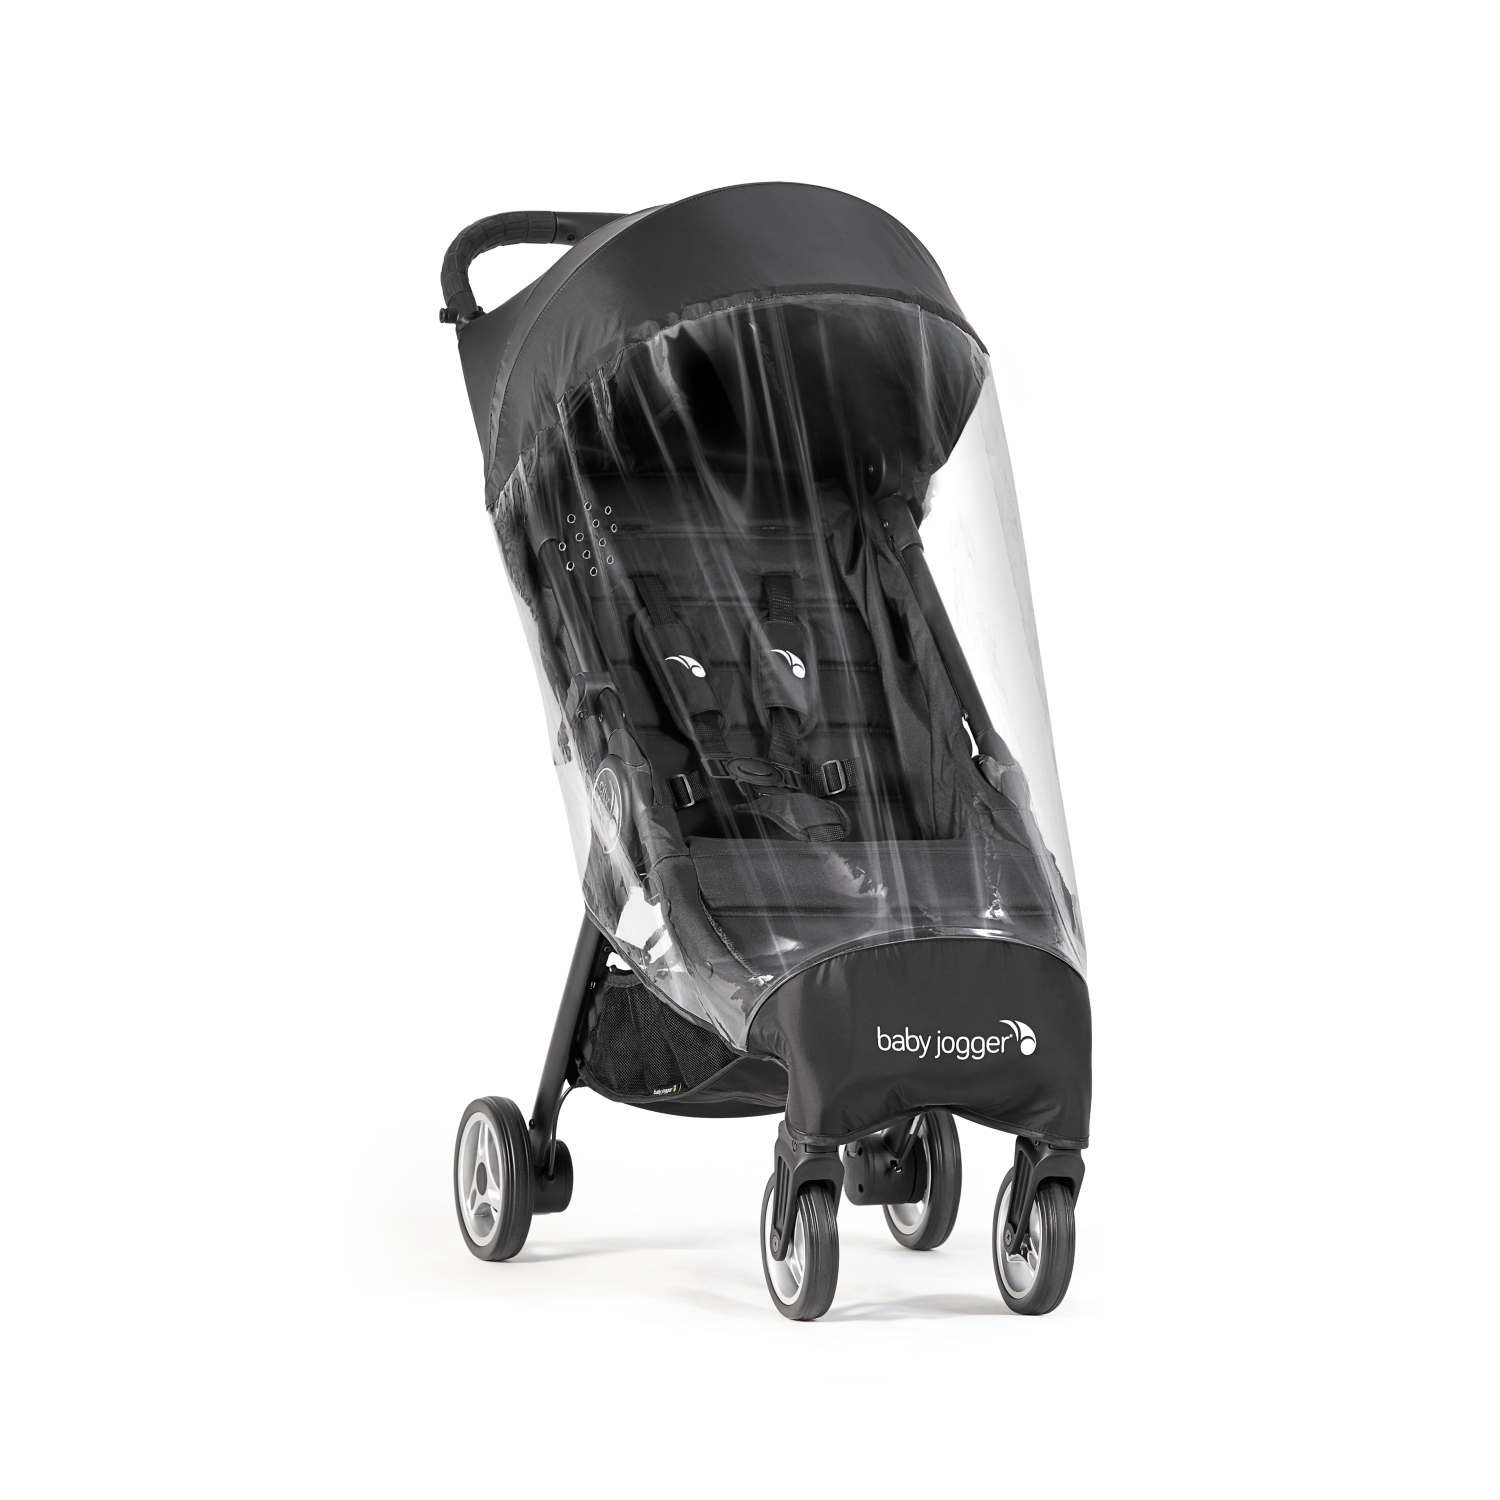 Regnskydd City Tour Babyjogger 174